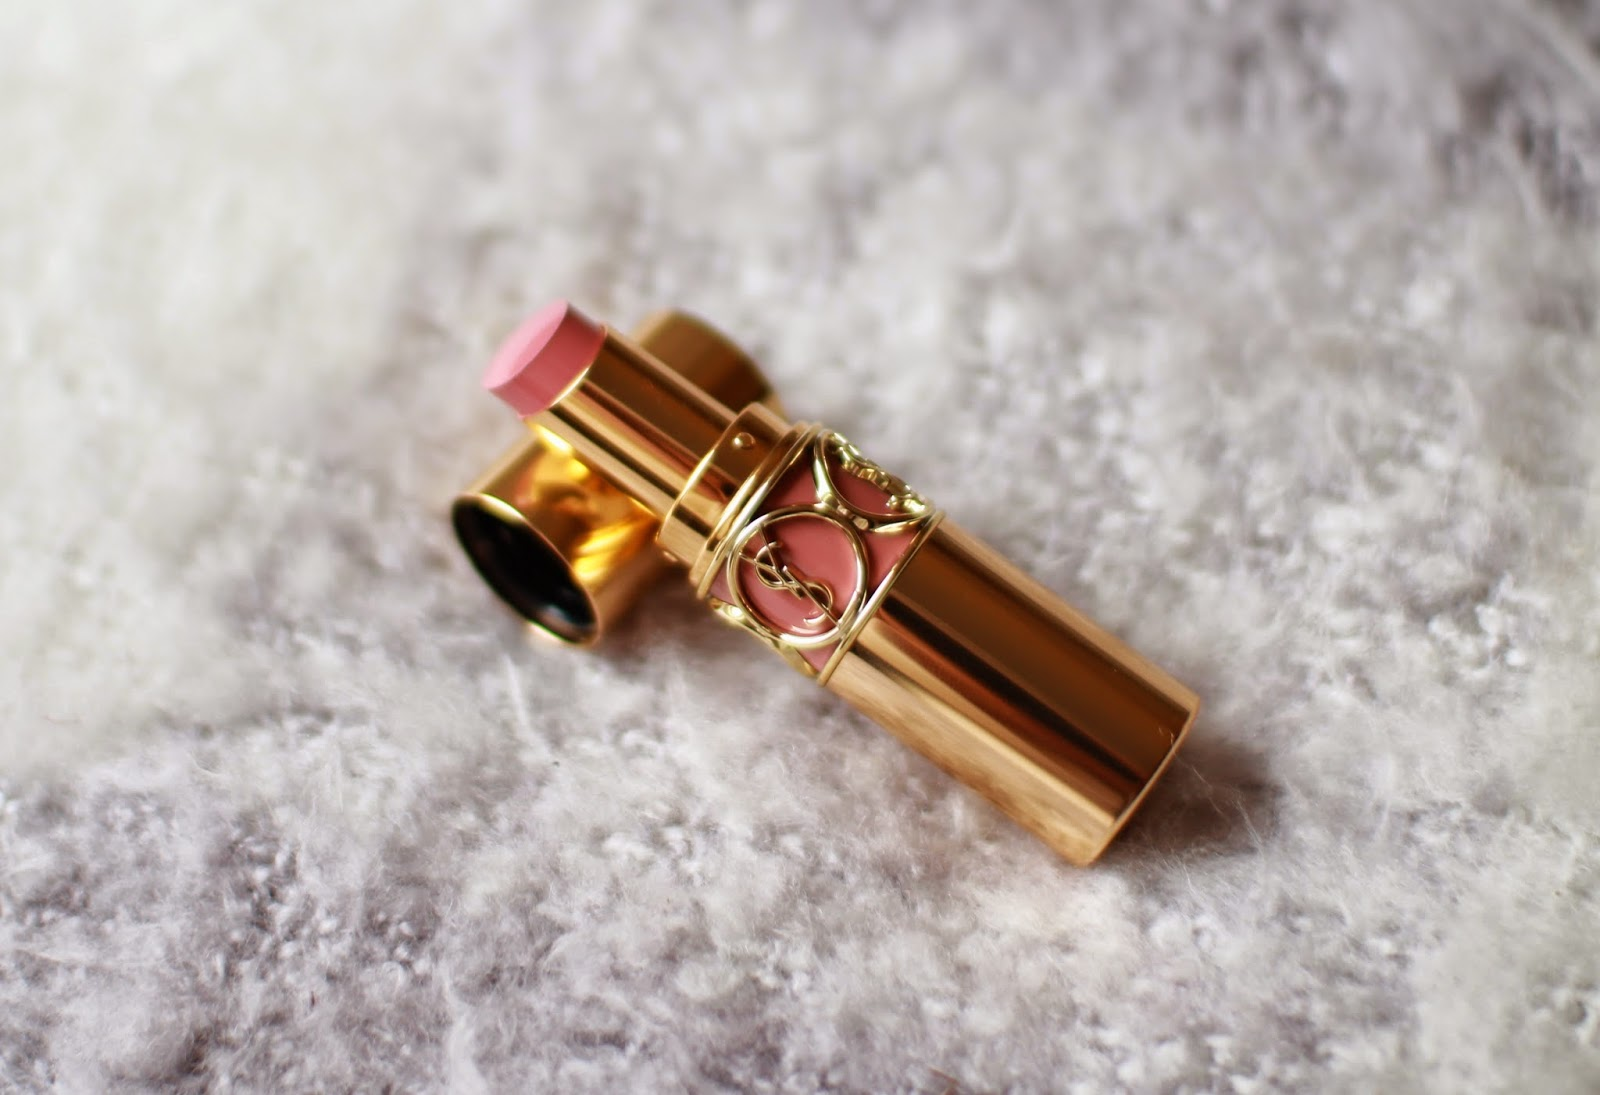 YSL Rouge Volupte Shine Lipstick in #9 Is One With My Lips